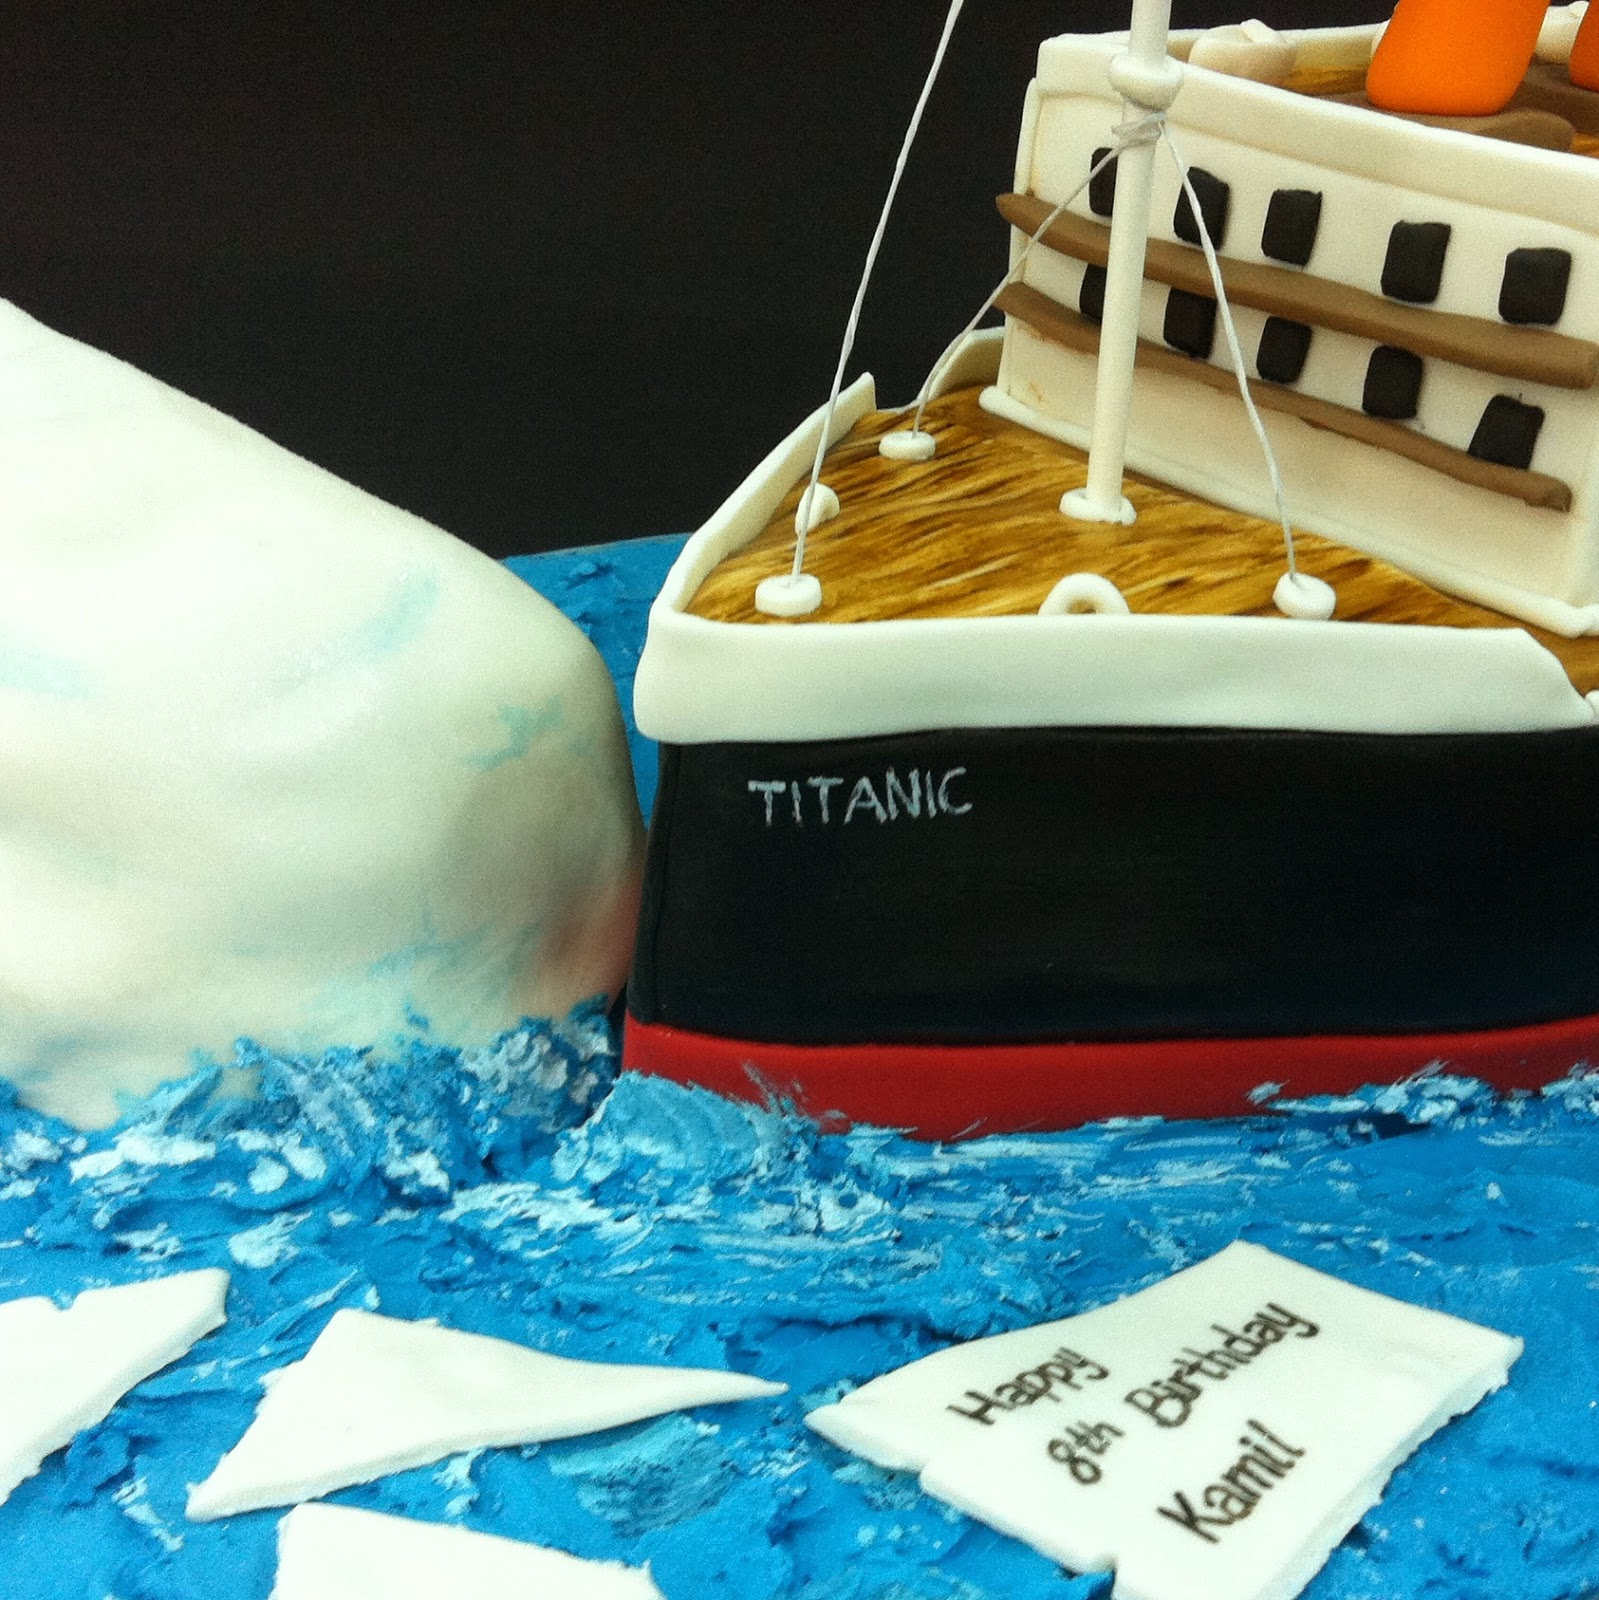 Tearoom By Bel Jee Titanic Ship Cake